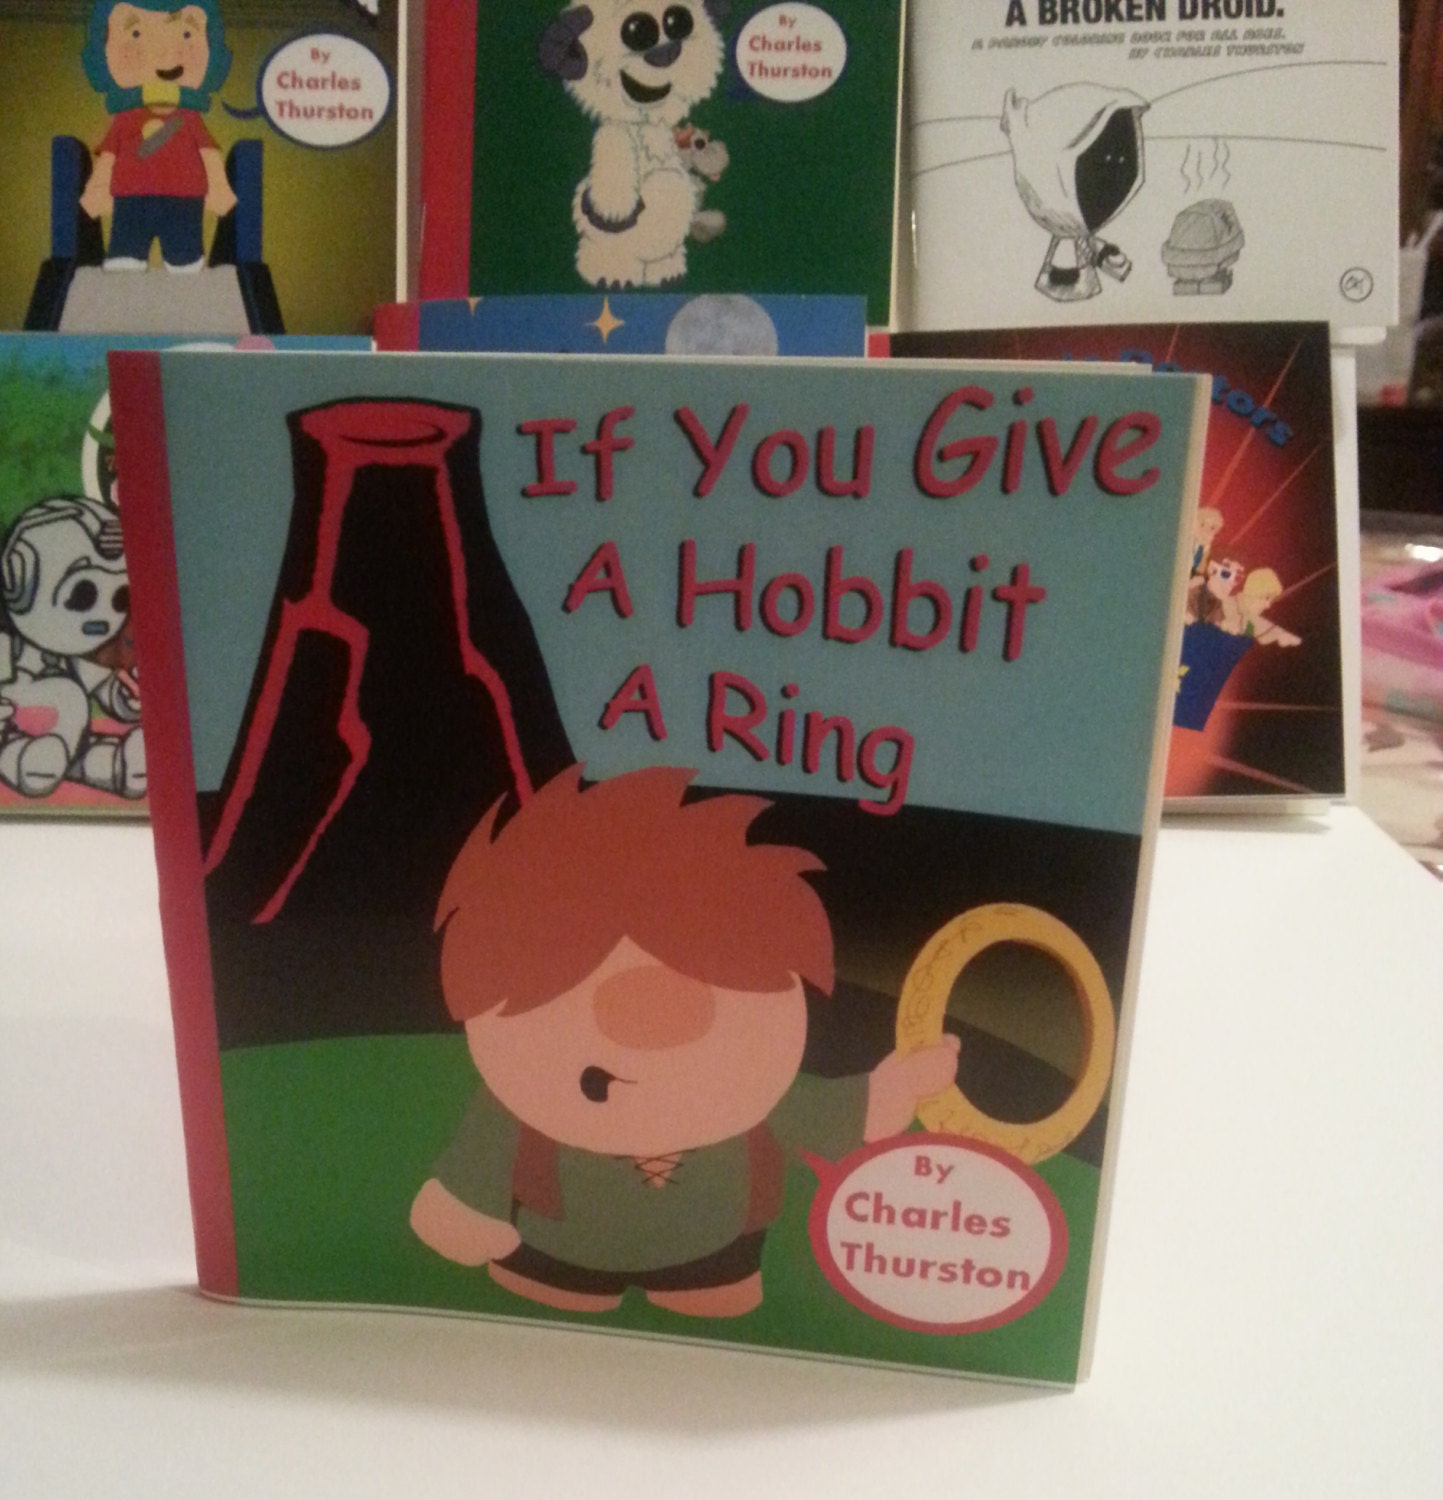 If you give a Hobbit a Ring by Charles Thurston